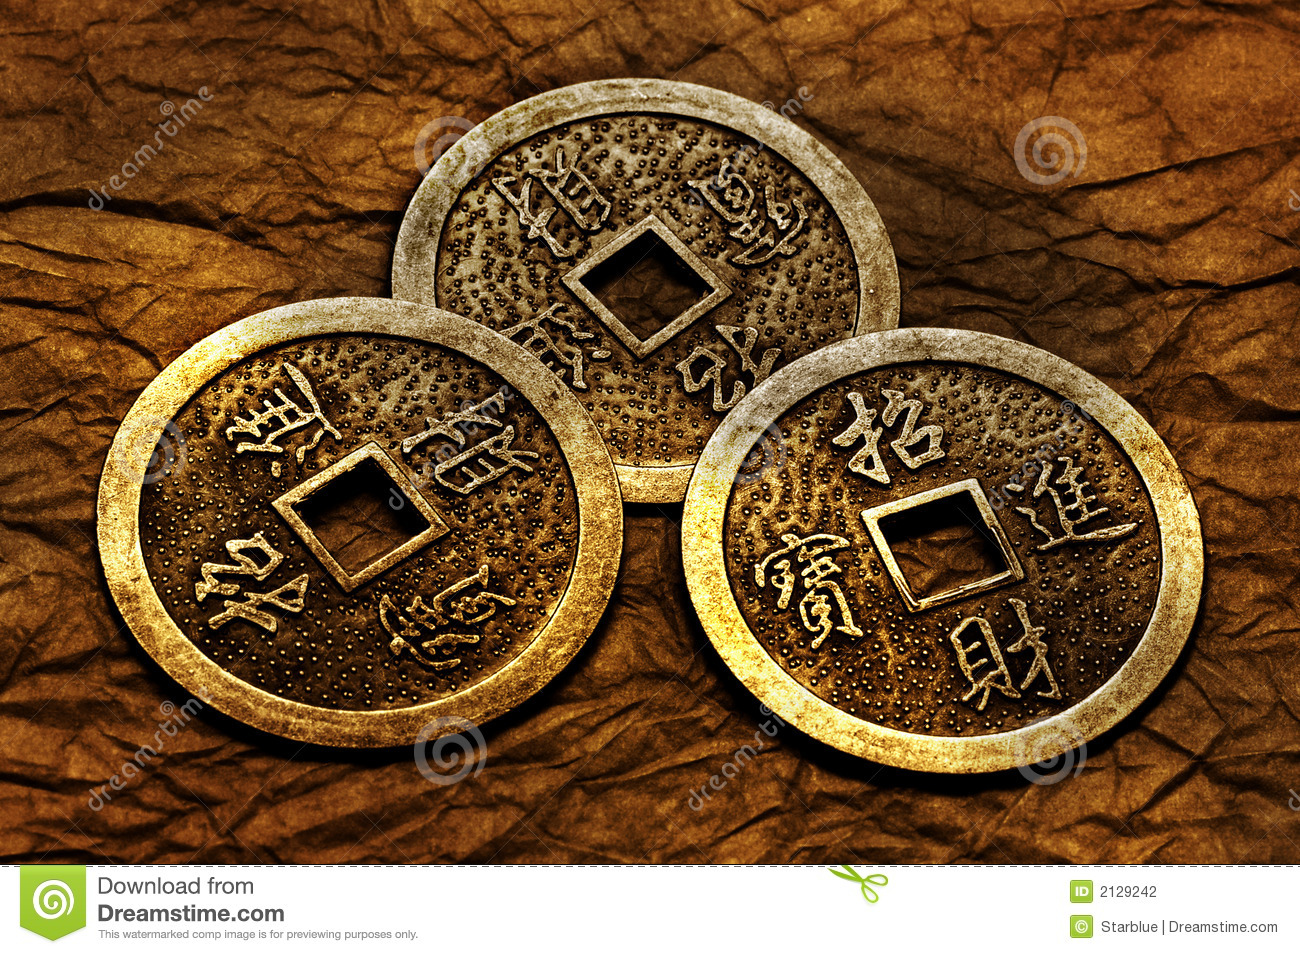 Three gold coins used for i-ching prophecy in gold lightning.